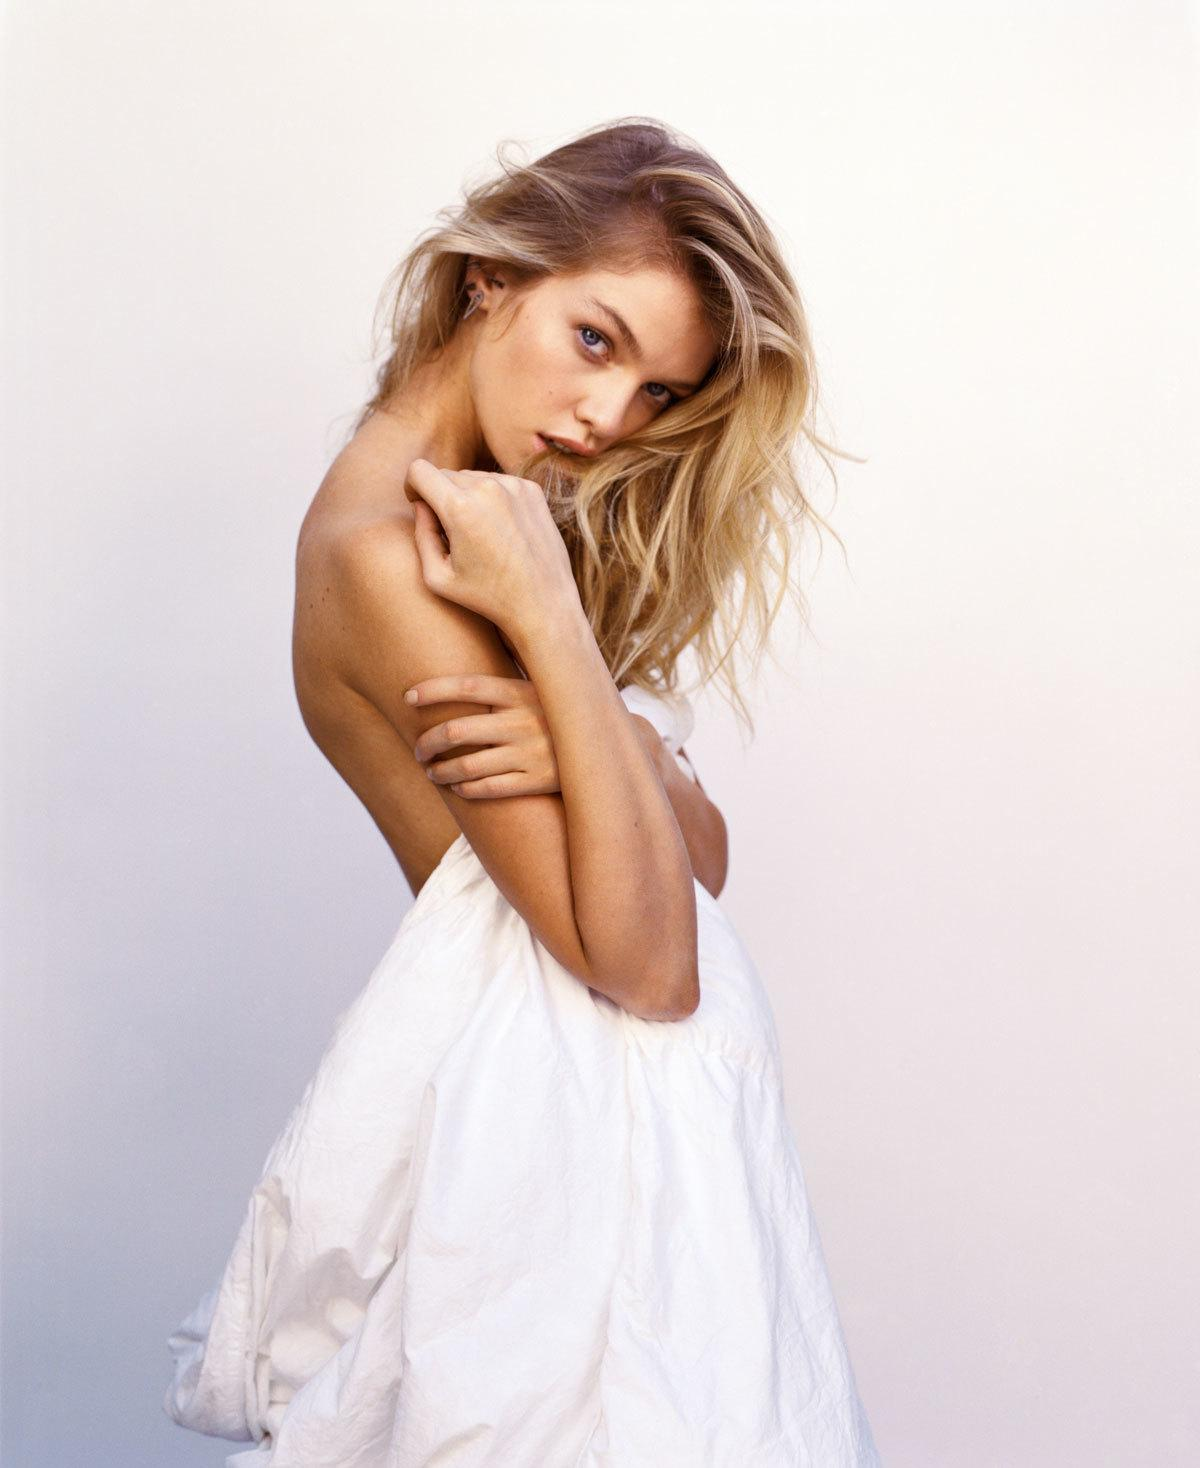 for stella maxwell individuality is a must, not a maybe | read | i-D